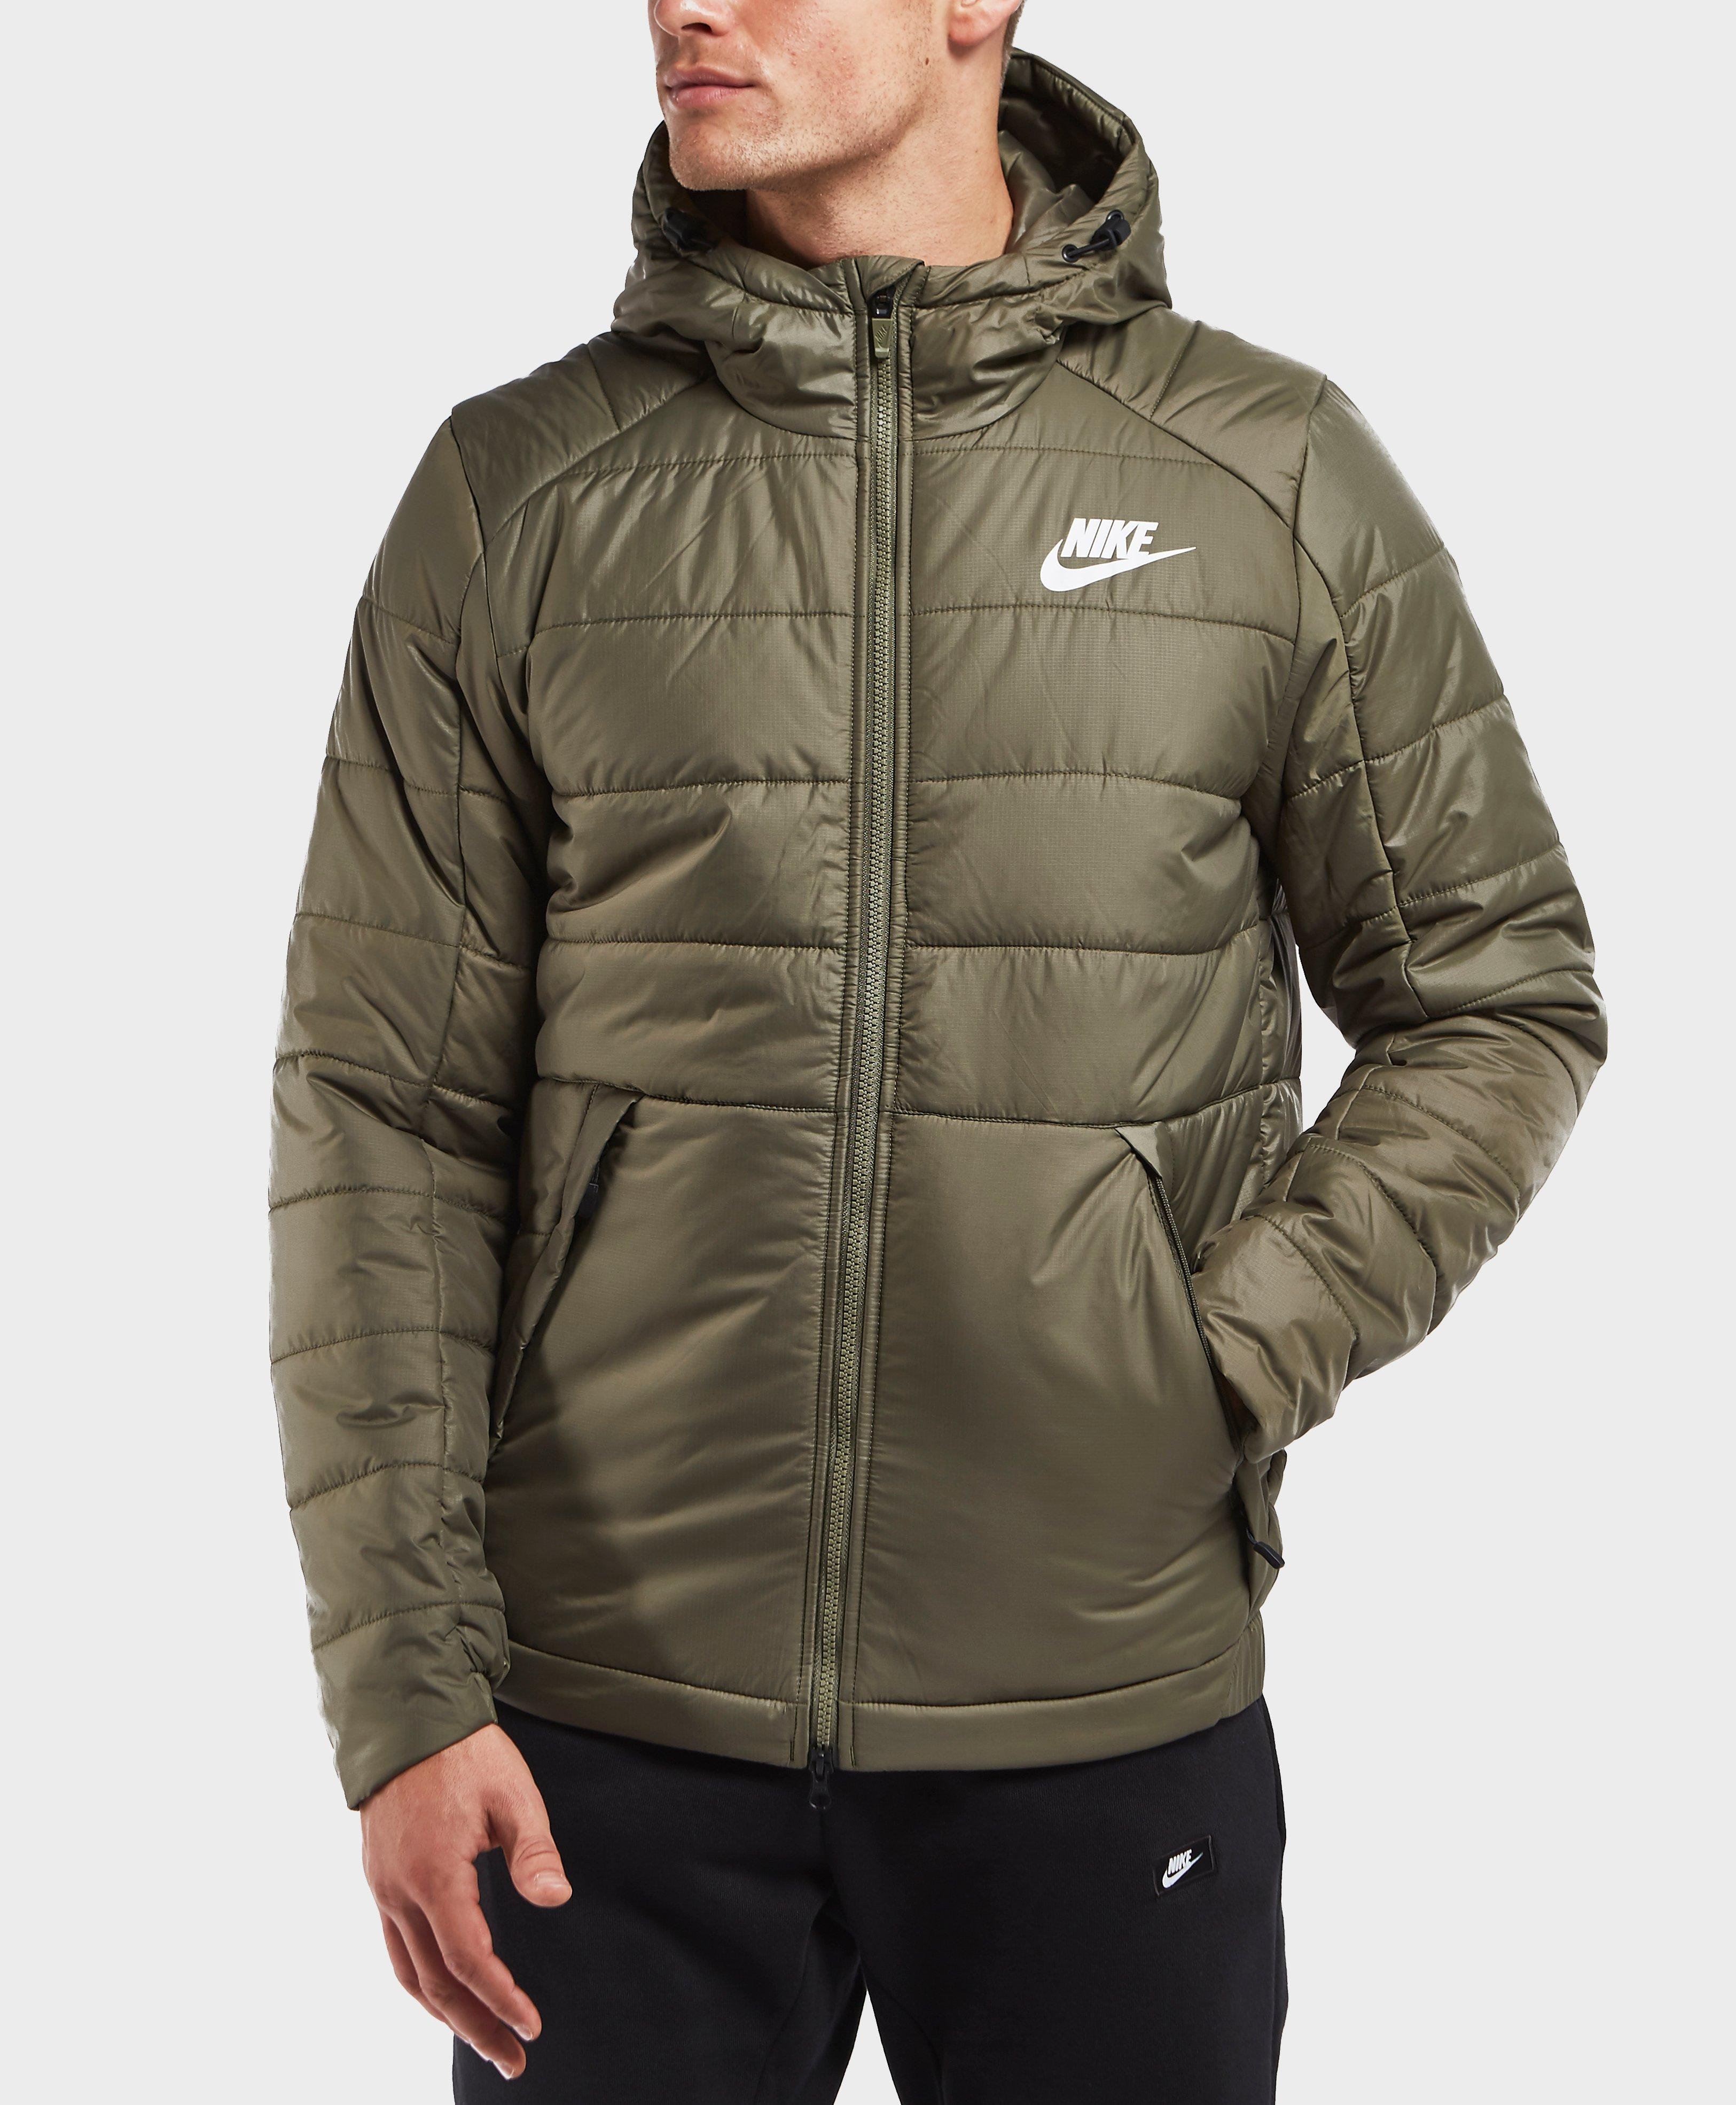 Nike Synthetic Bubble Jacket In Green For Men Lyst